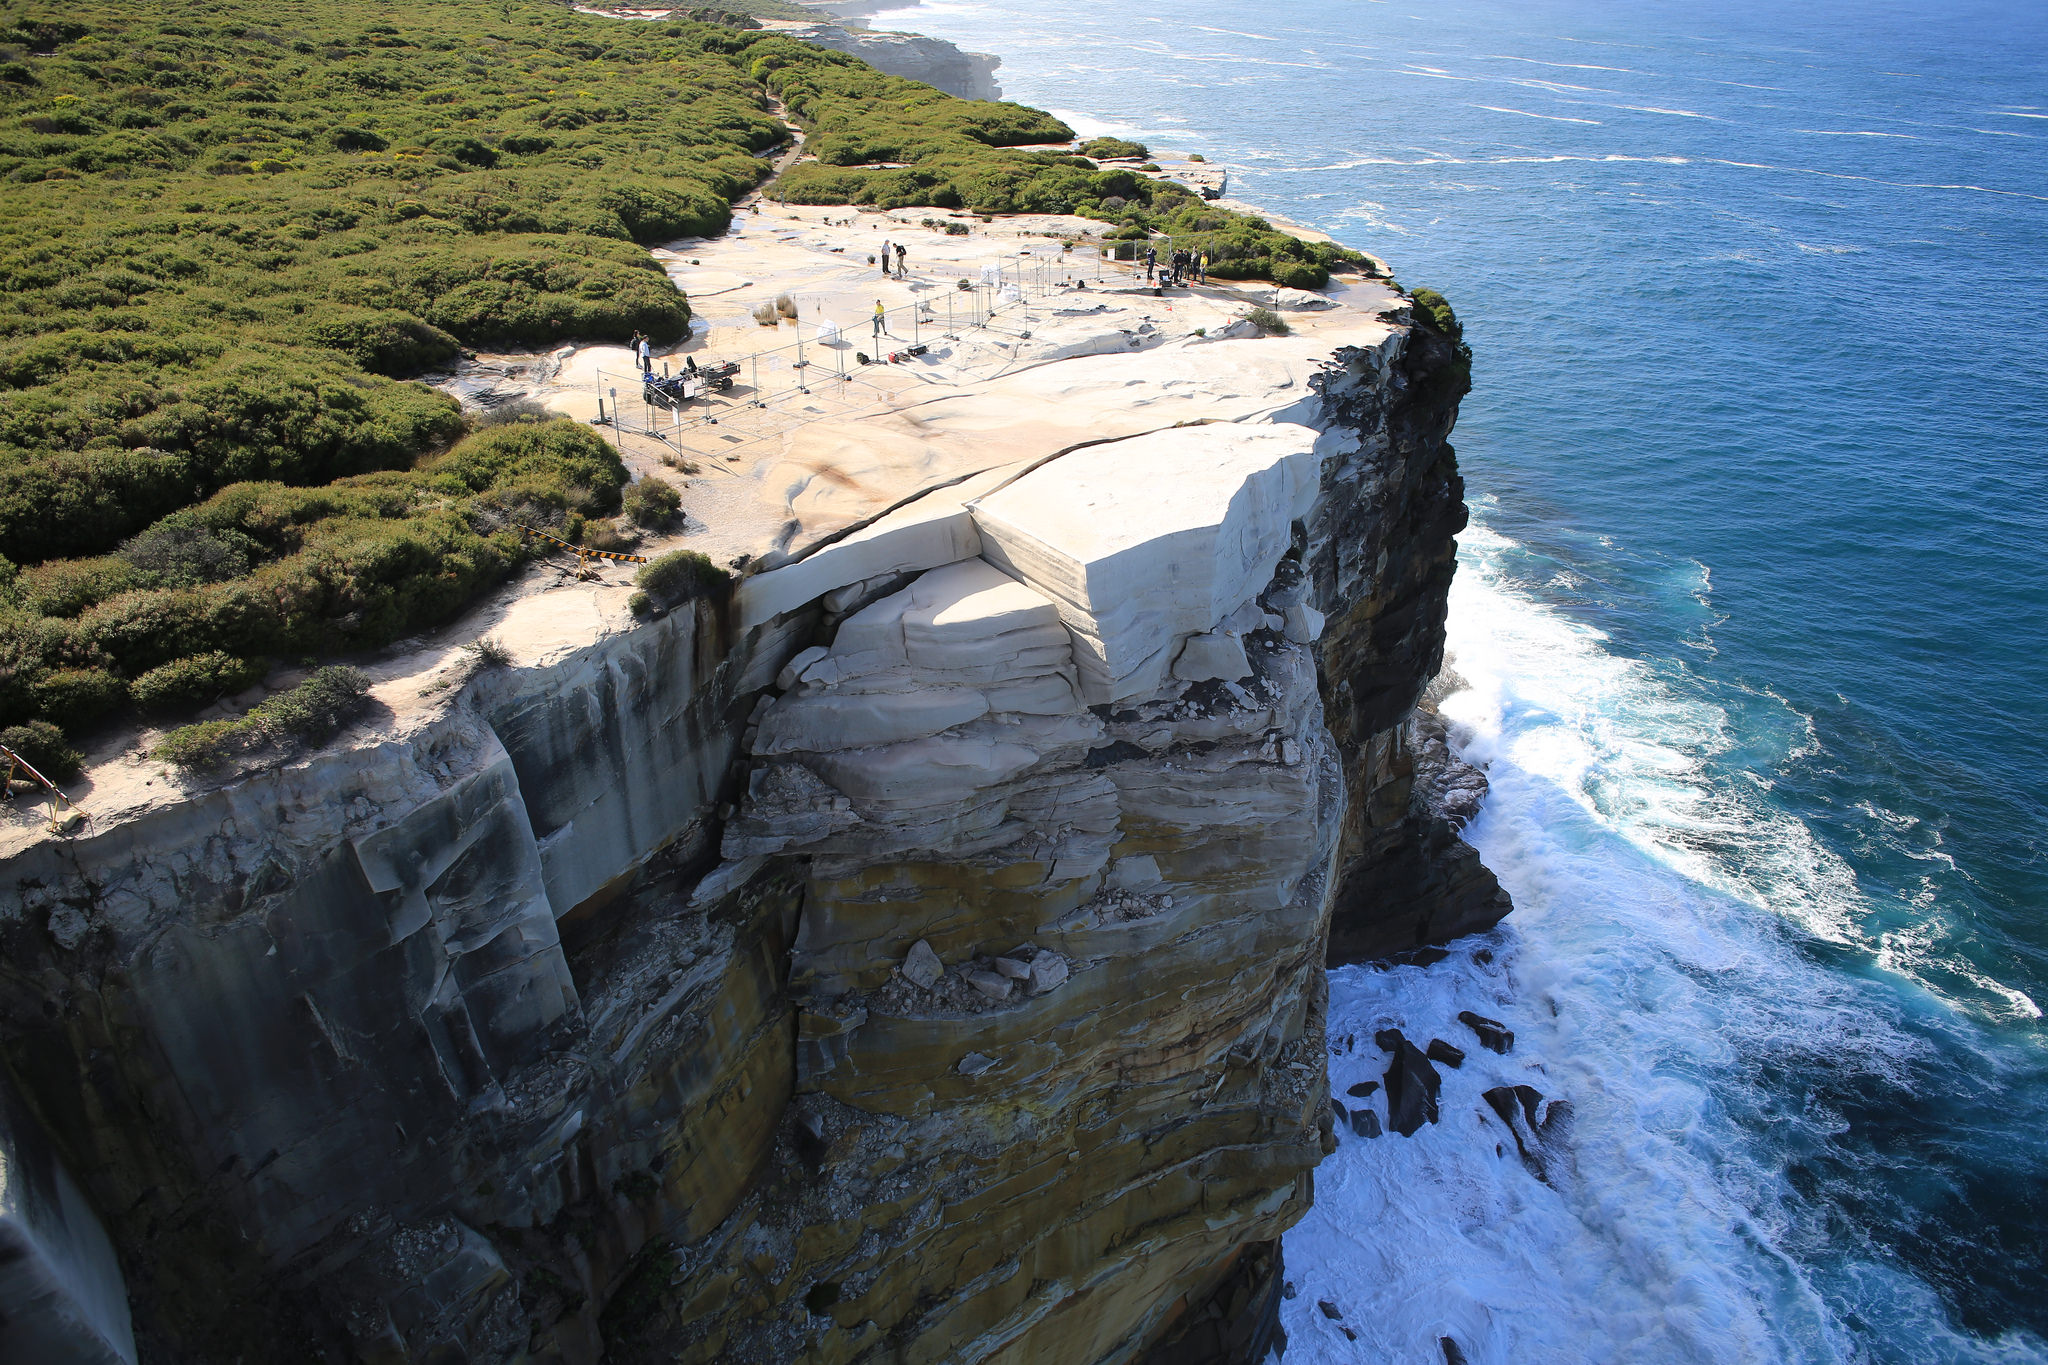 Australia S Wedding Cake Rock May Collapse Into The Sea Cnn Travel